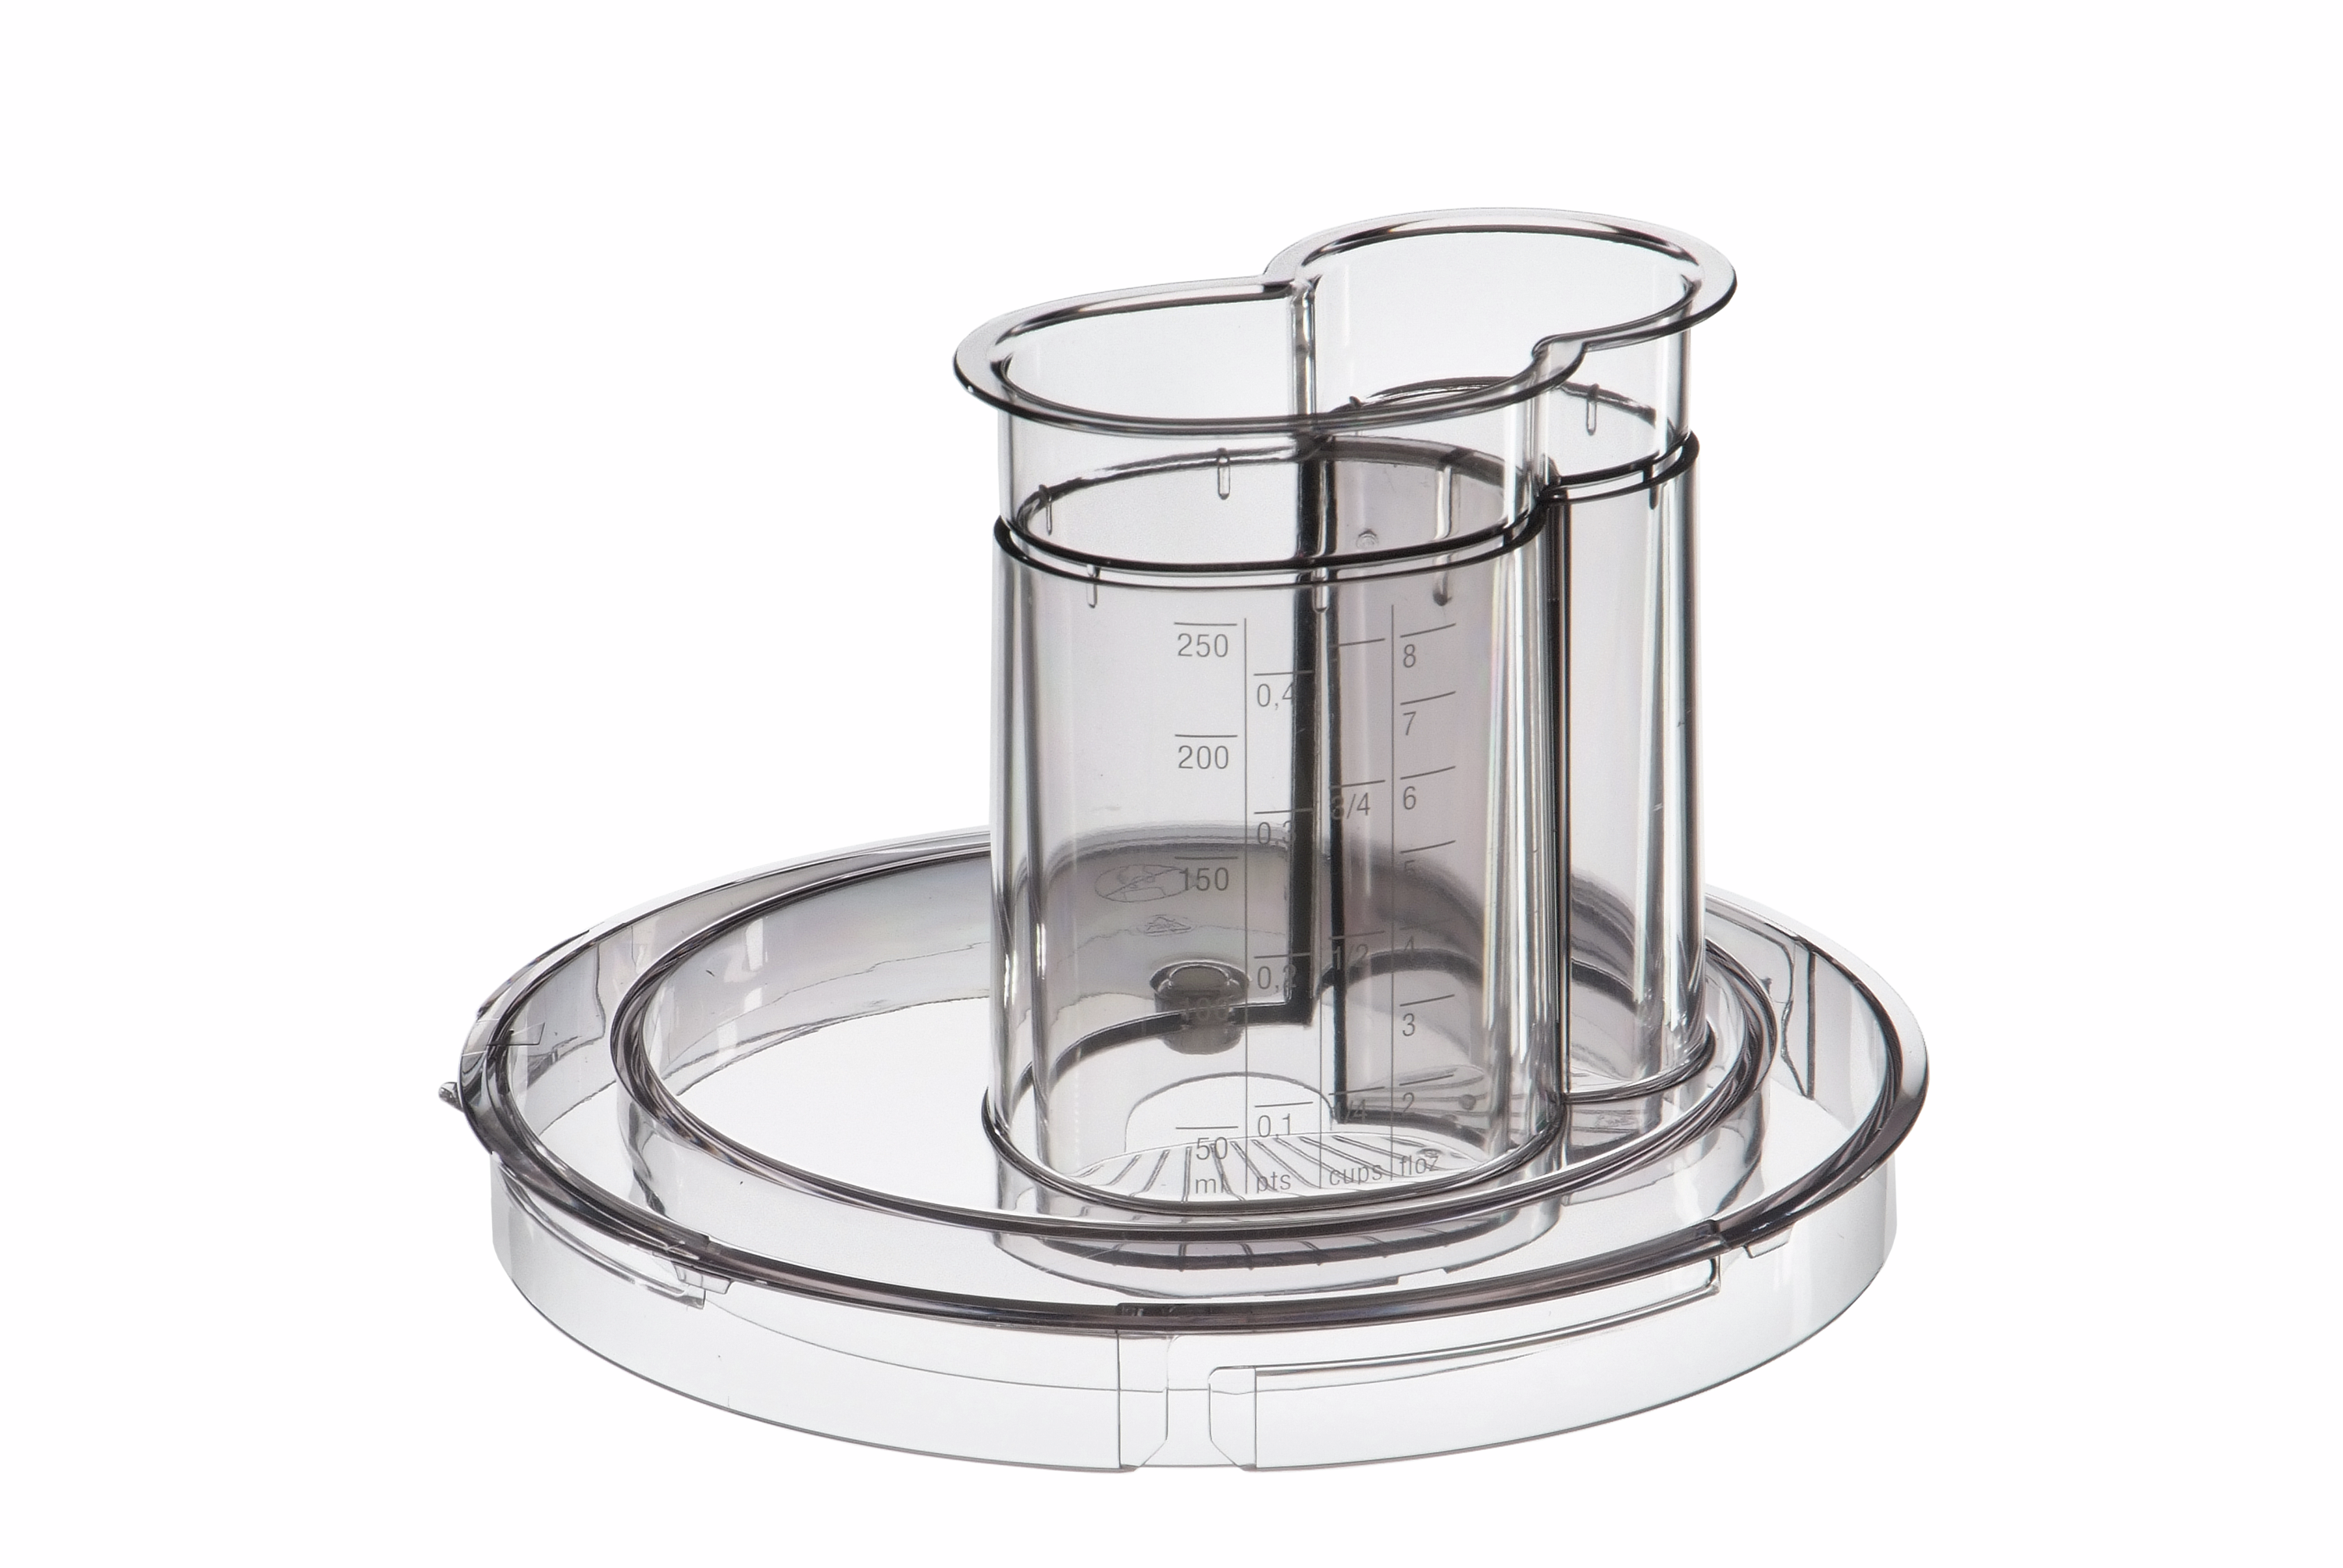 Mixing Bowl Lid for Food Processor 00361735